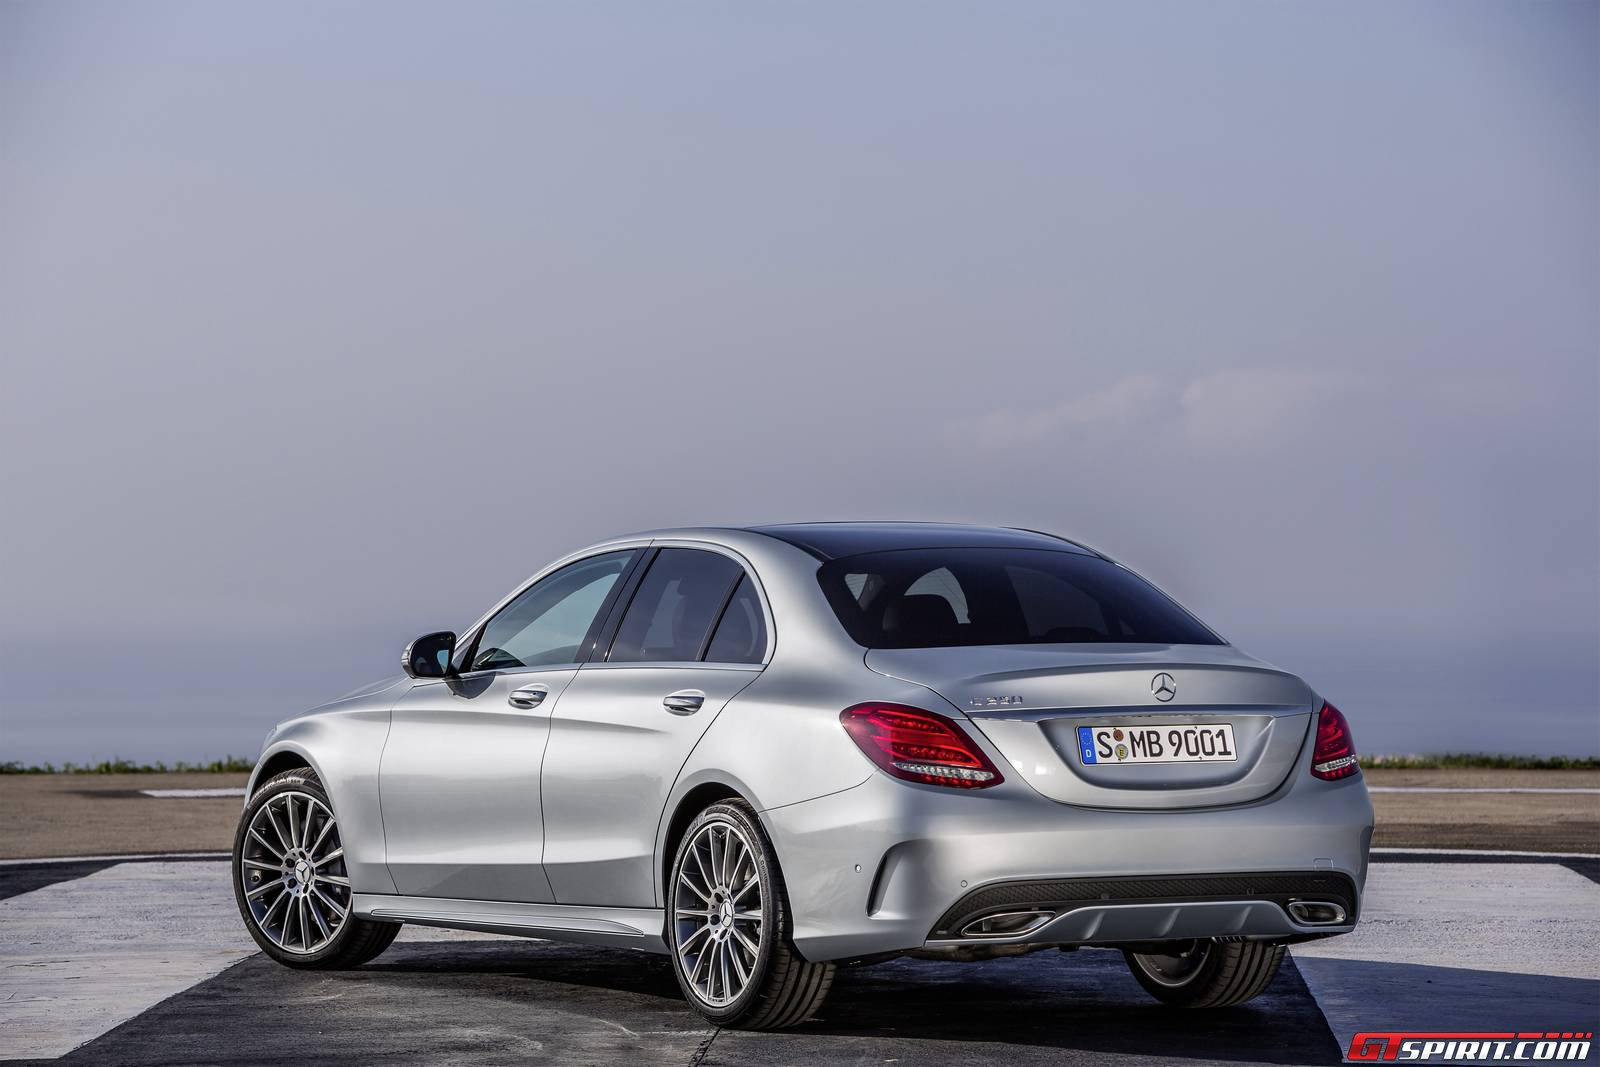 2014 mercedes benz c class engine details revealed gtspirit for Benz mercedes c class